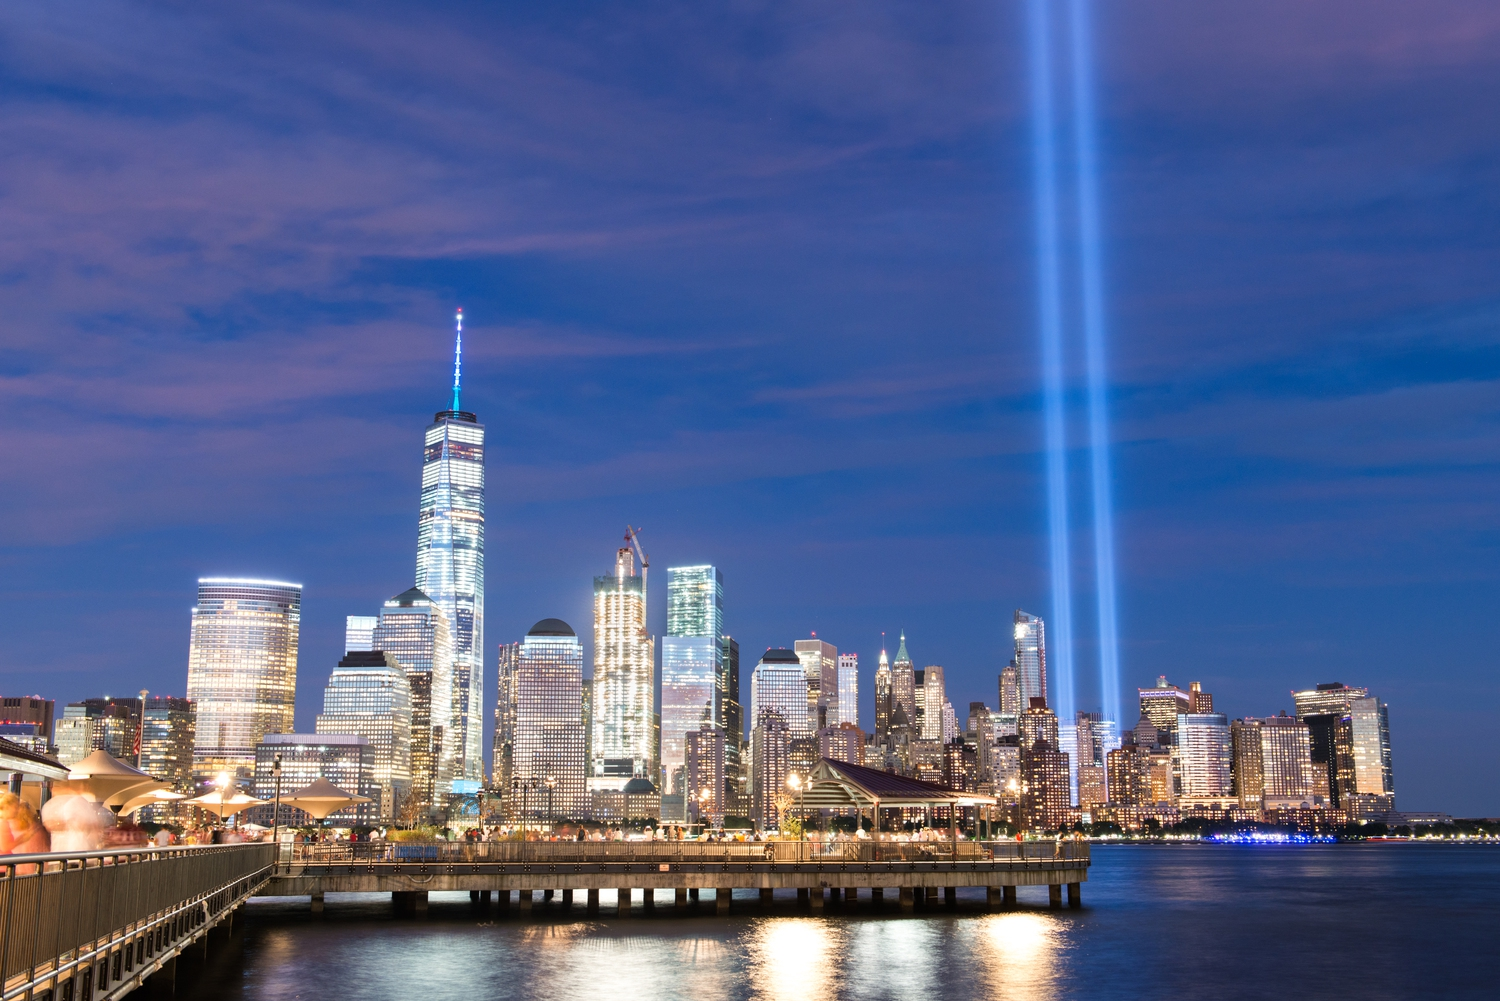 2016 9/11 Memorial Lights | The 9/11 Memorial Lights, as viewed from Jersey City